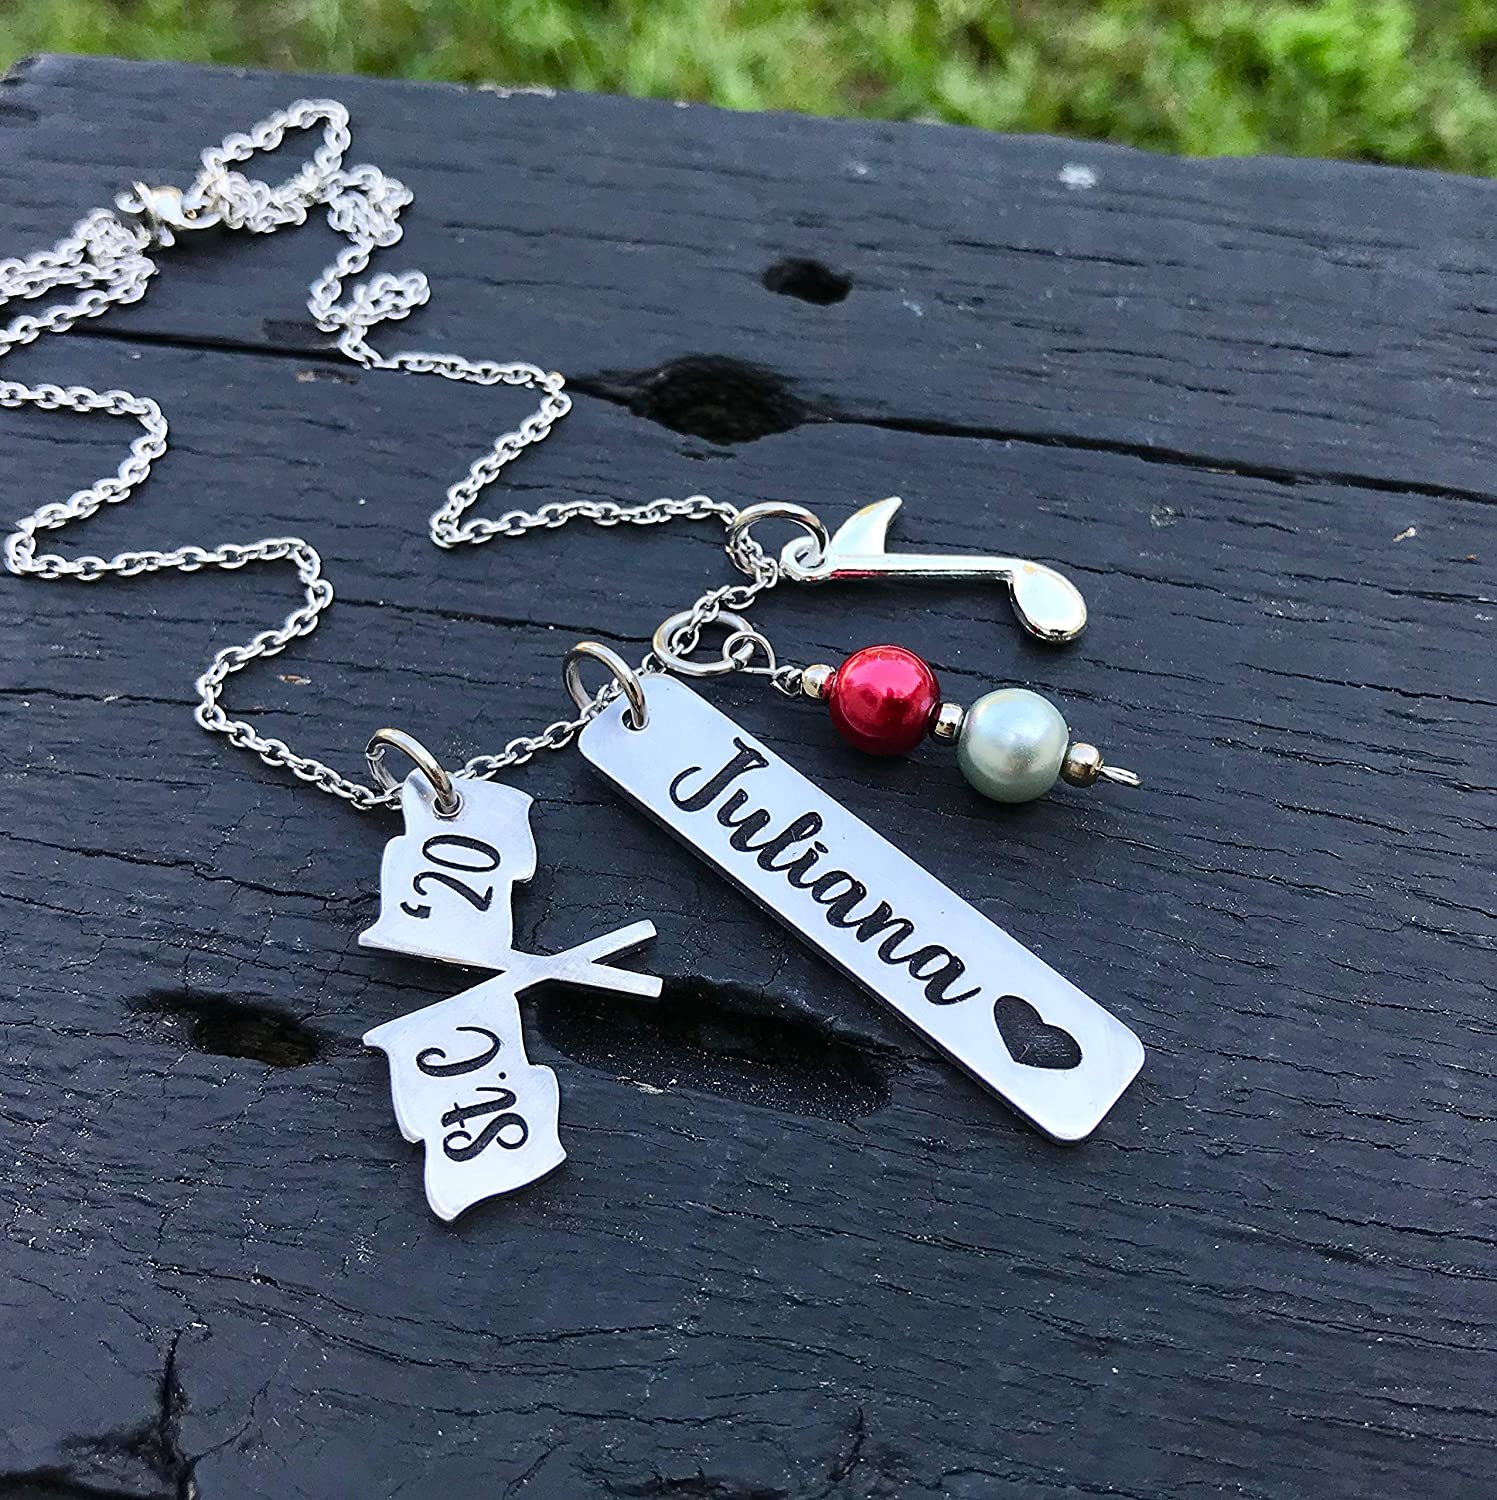 Color guard Necklace colorguard Charm Necklace chain jewelry best present gift